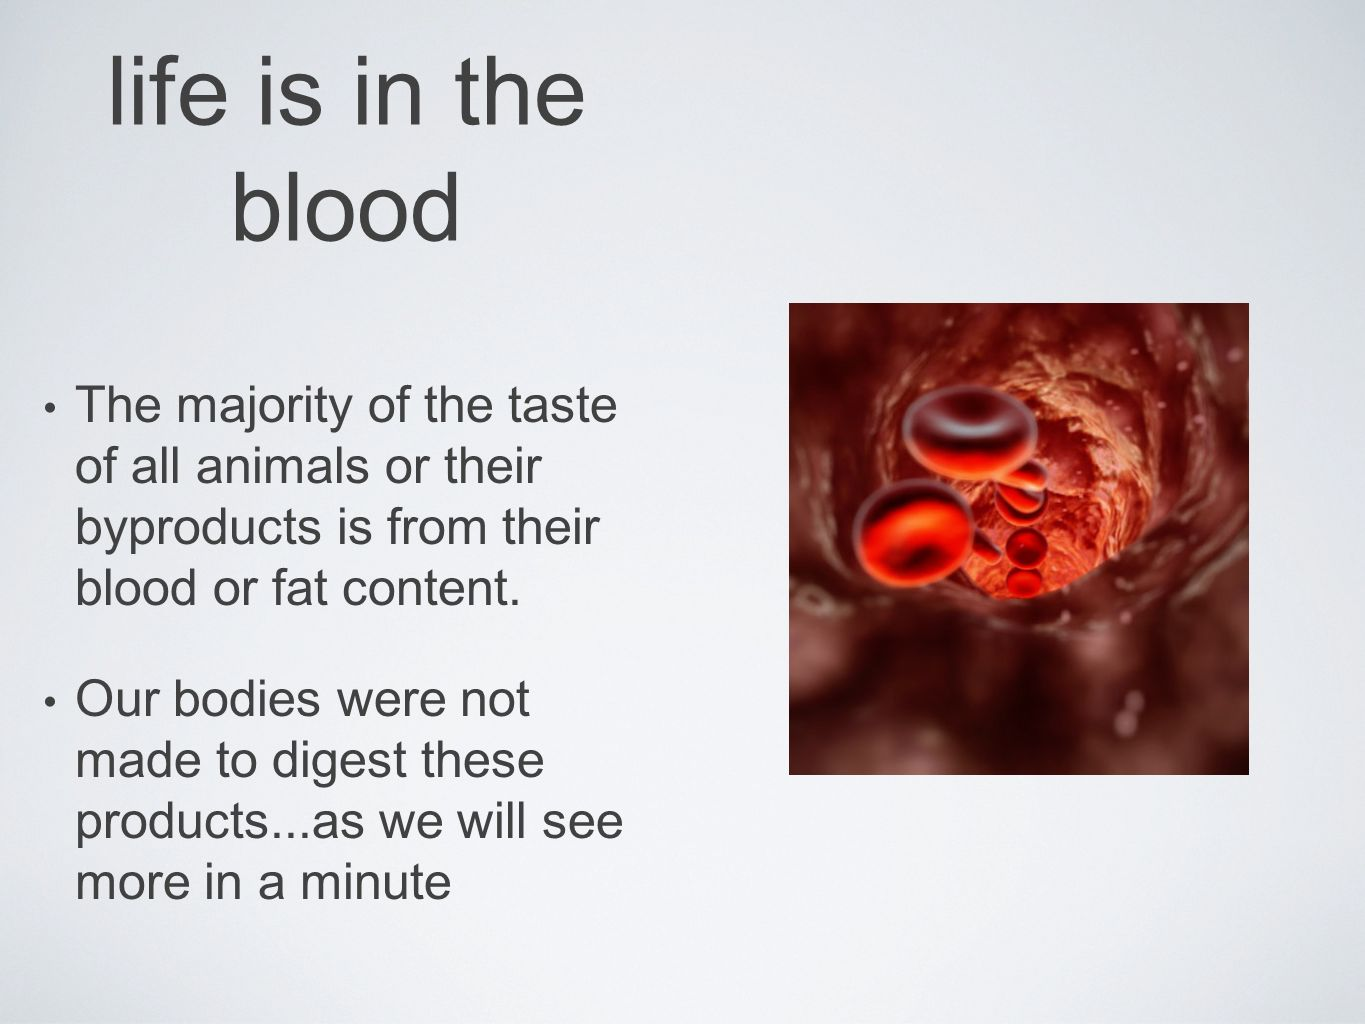 life is in the bloodThe majority of the taste of all animals or their byproducts is from their blood or fat content.